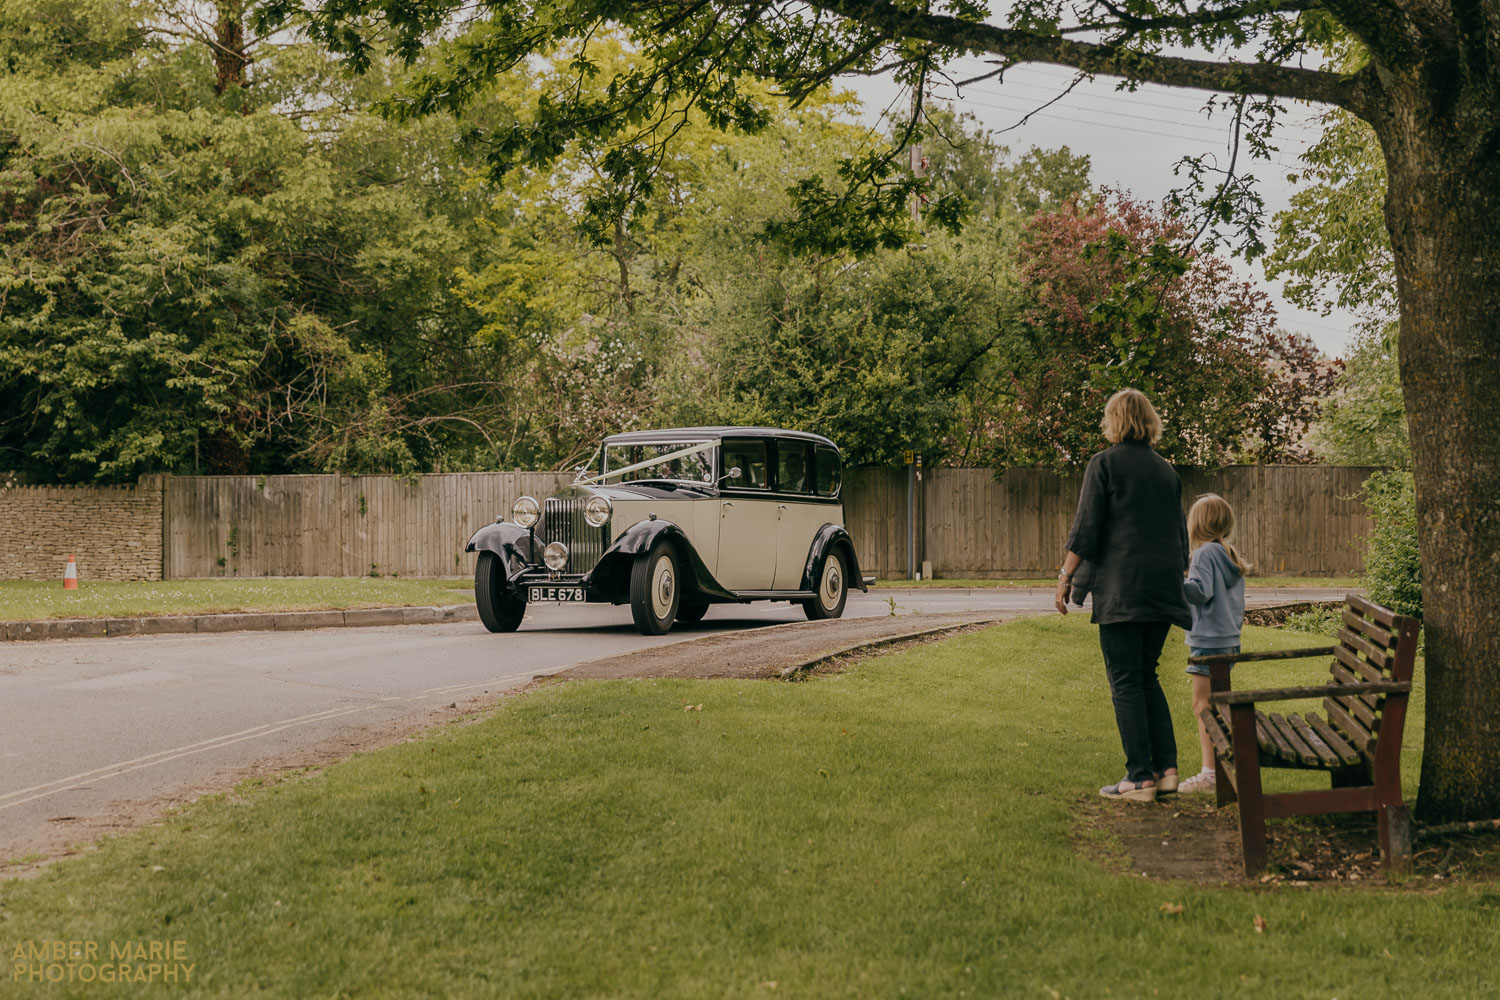 Documentary wedding photo of bride arriving at church in vintage car as neighbours watch